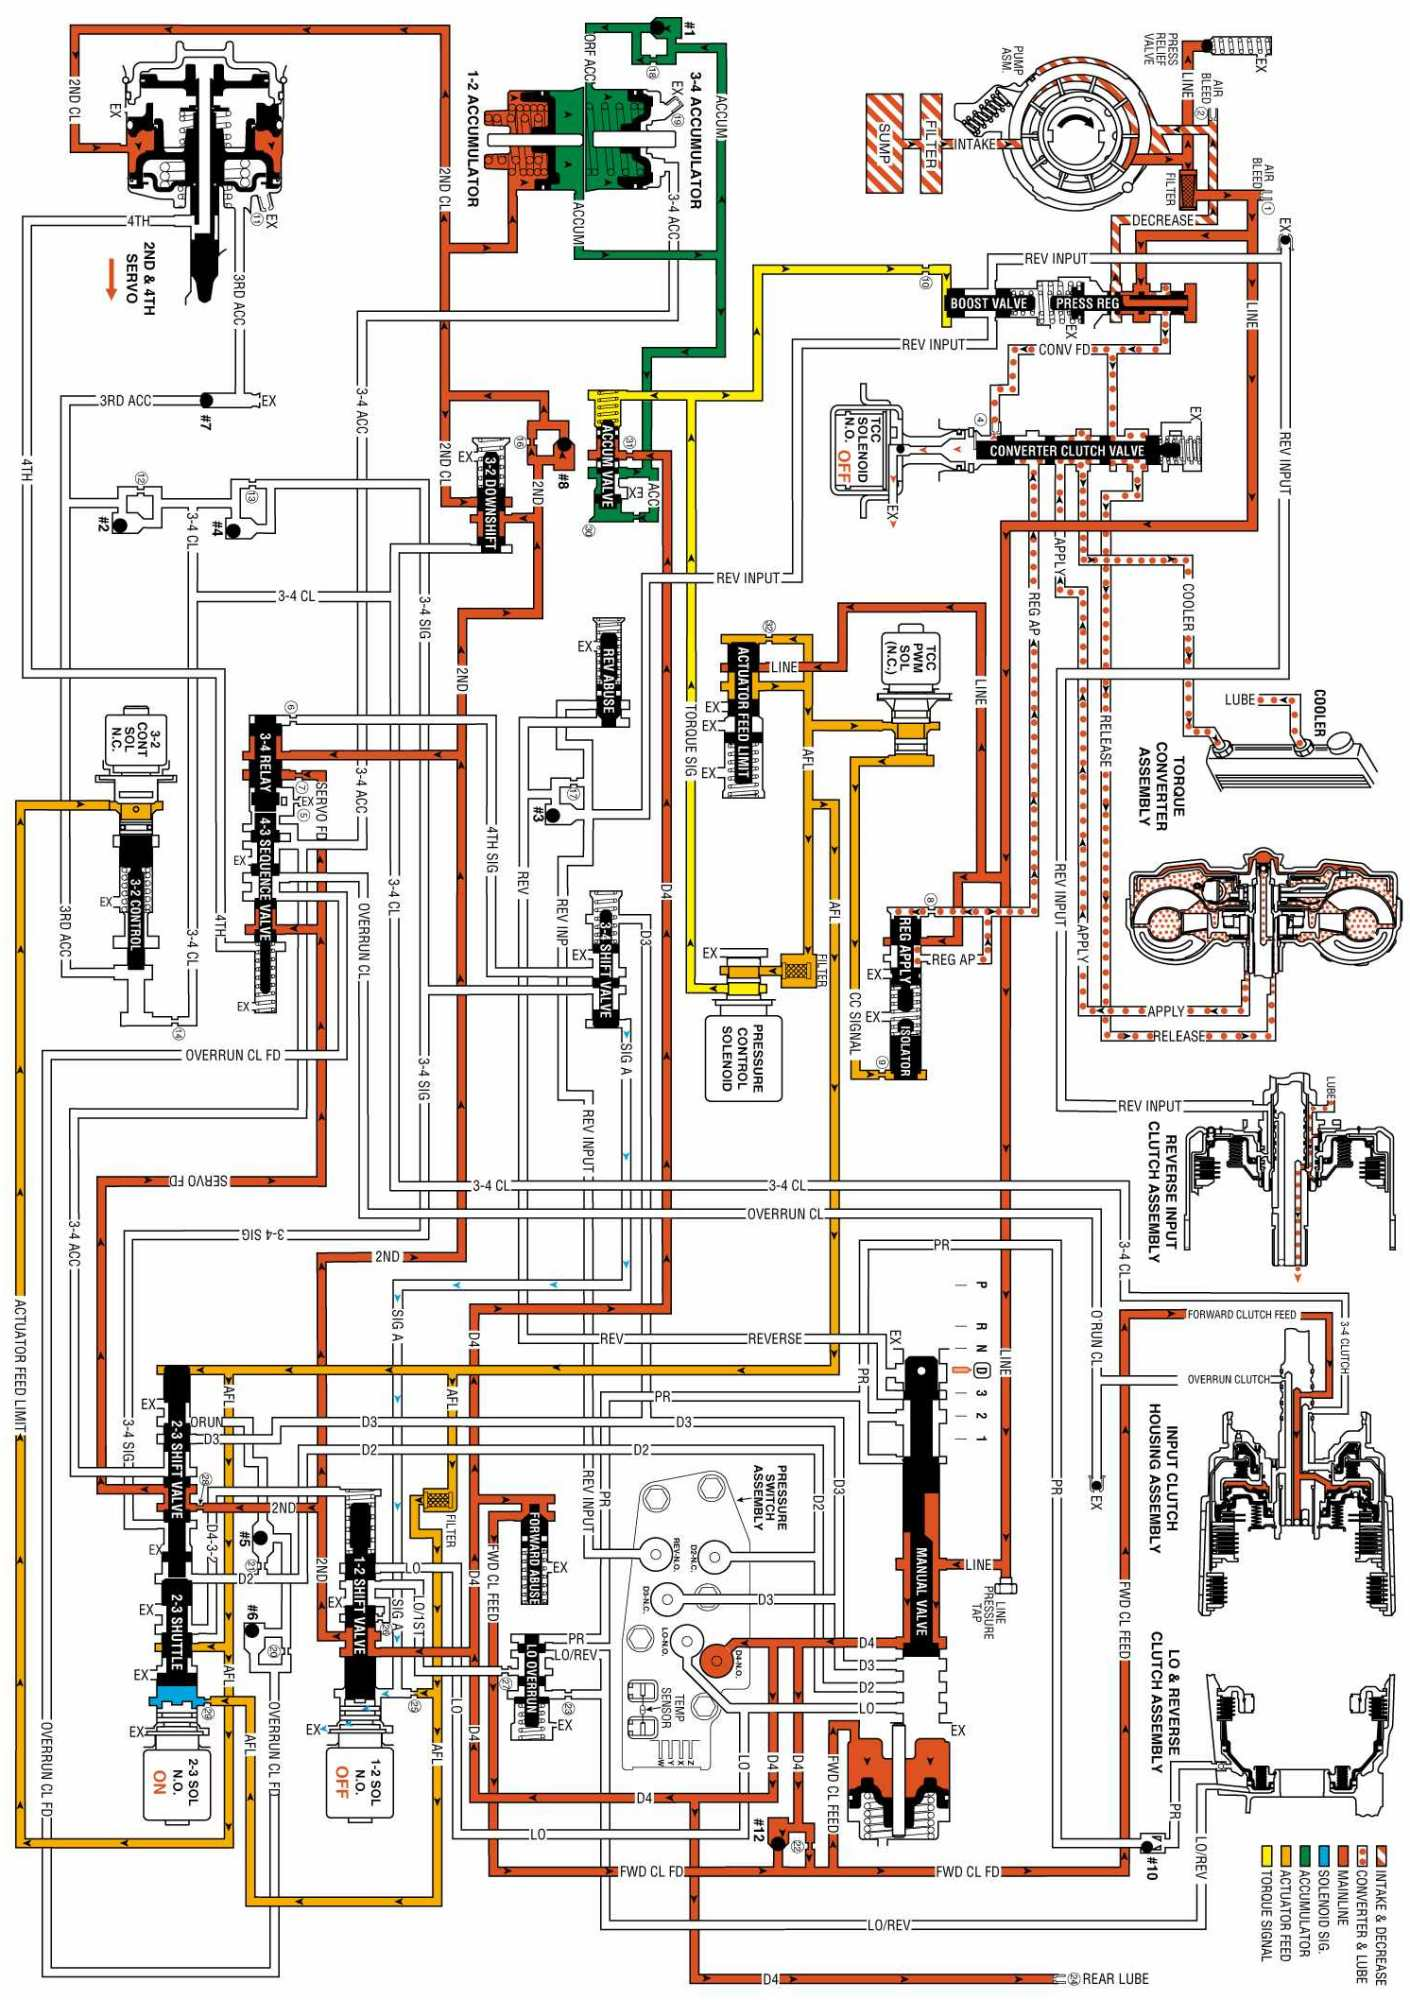 Th400 Diagram | Wiring Library